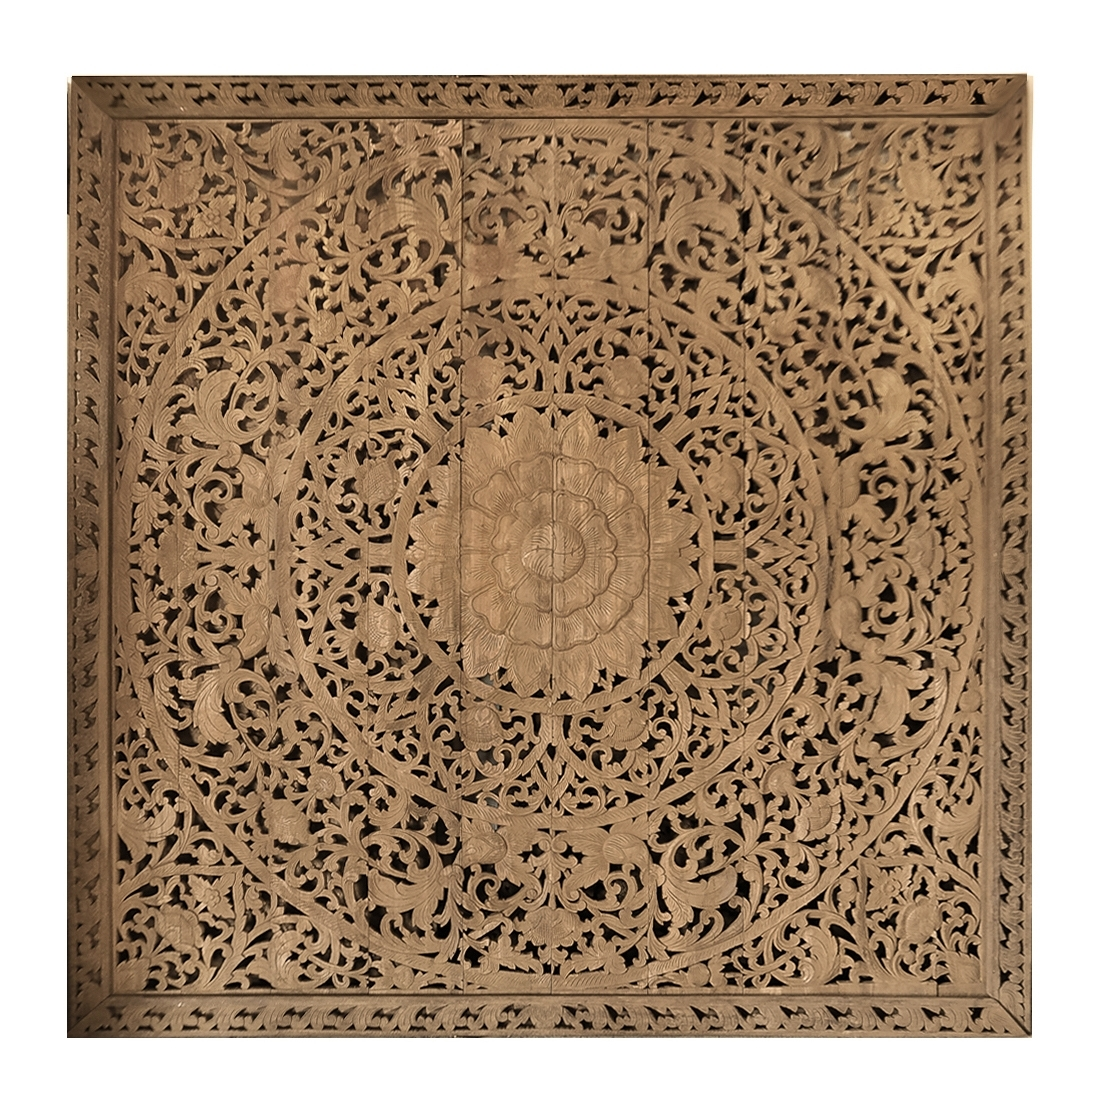 Buy Large Grand Carved Wooden Wall Art Or Ceiling Panel Online inside Carved Wood Wall Art (Image 5 of 20)